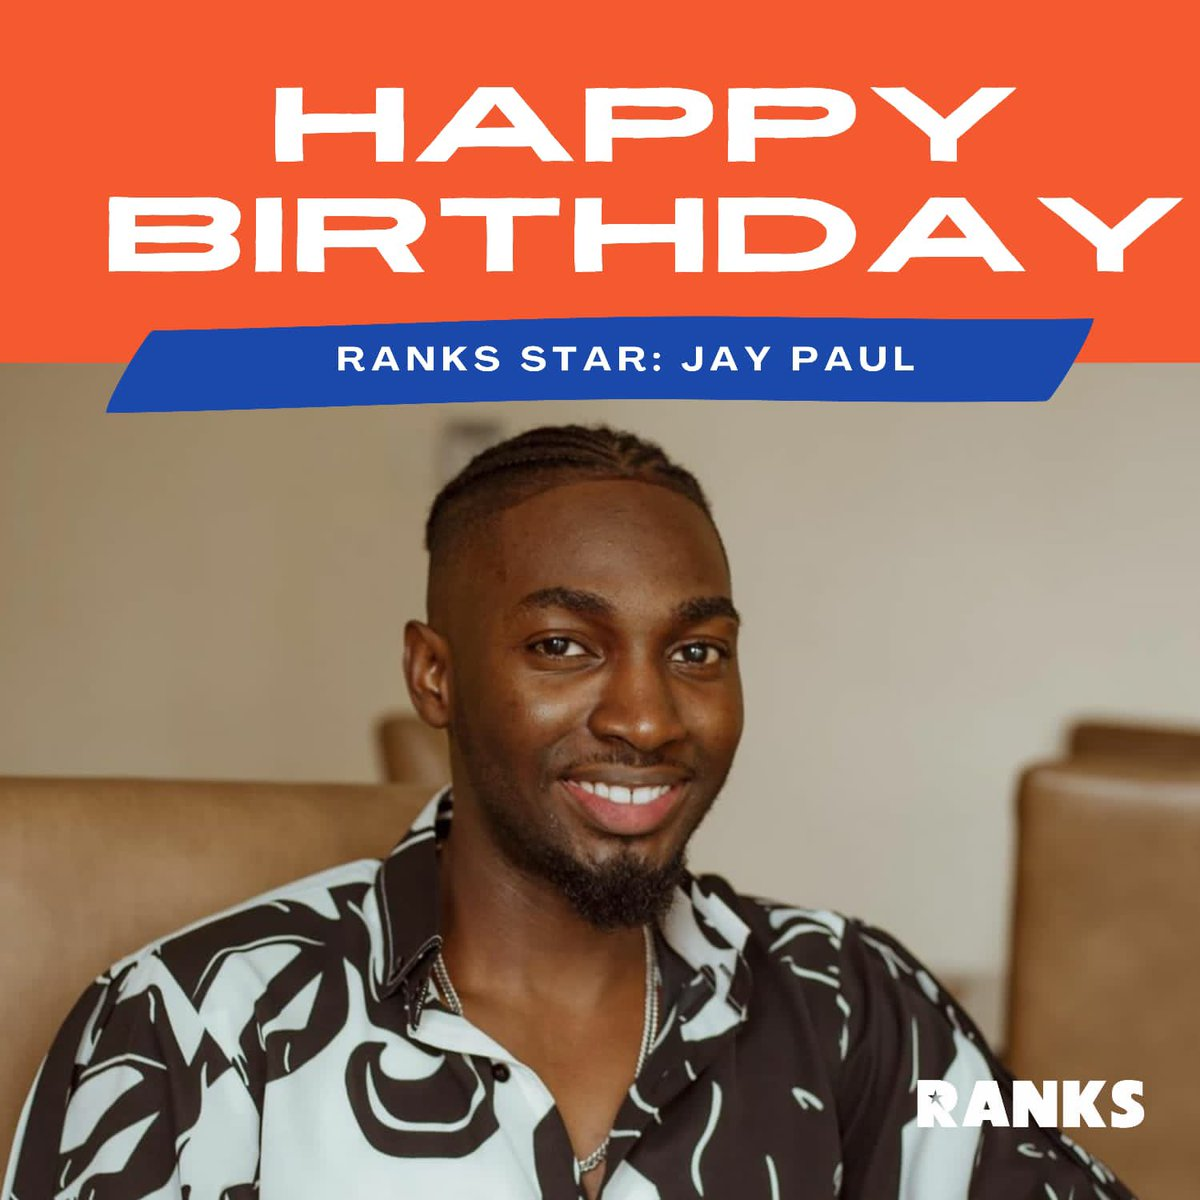 Happy birthday to the Man with enough Fire and vibes to go round @Jaypaulmrflamez . More years of greatness ahead champ ❤️❤️❤️